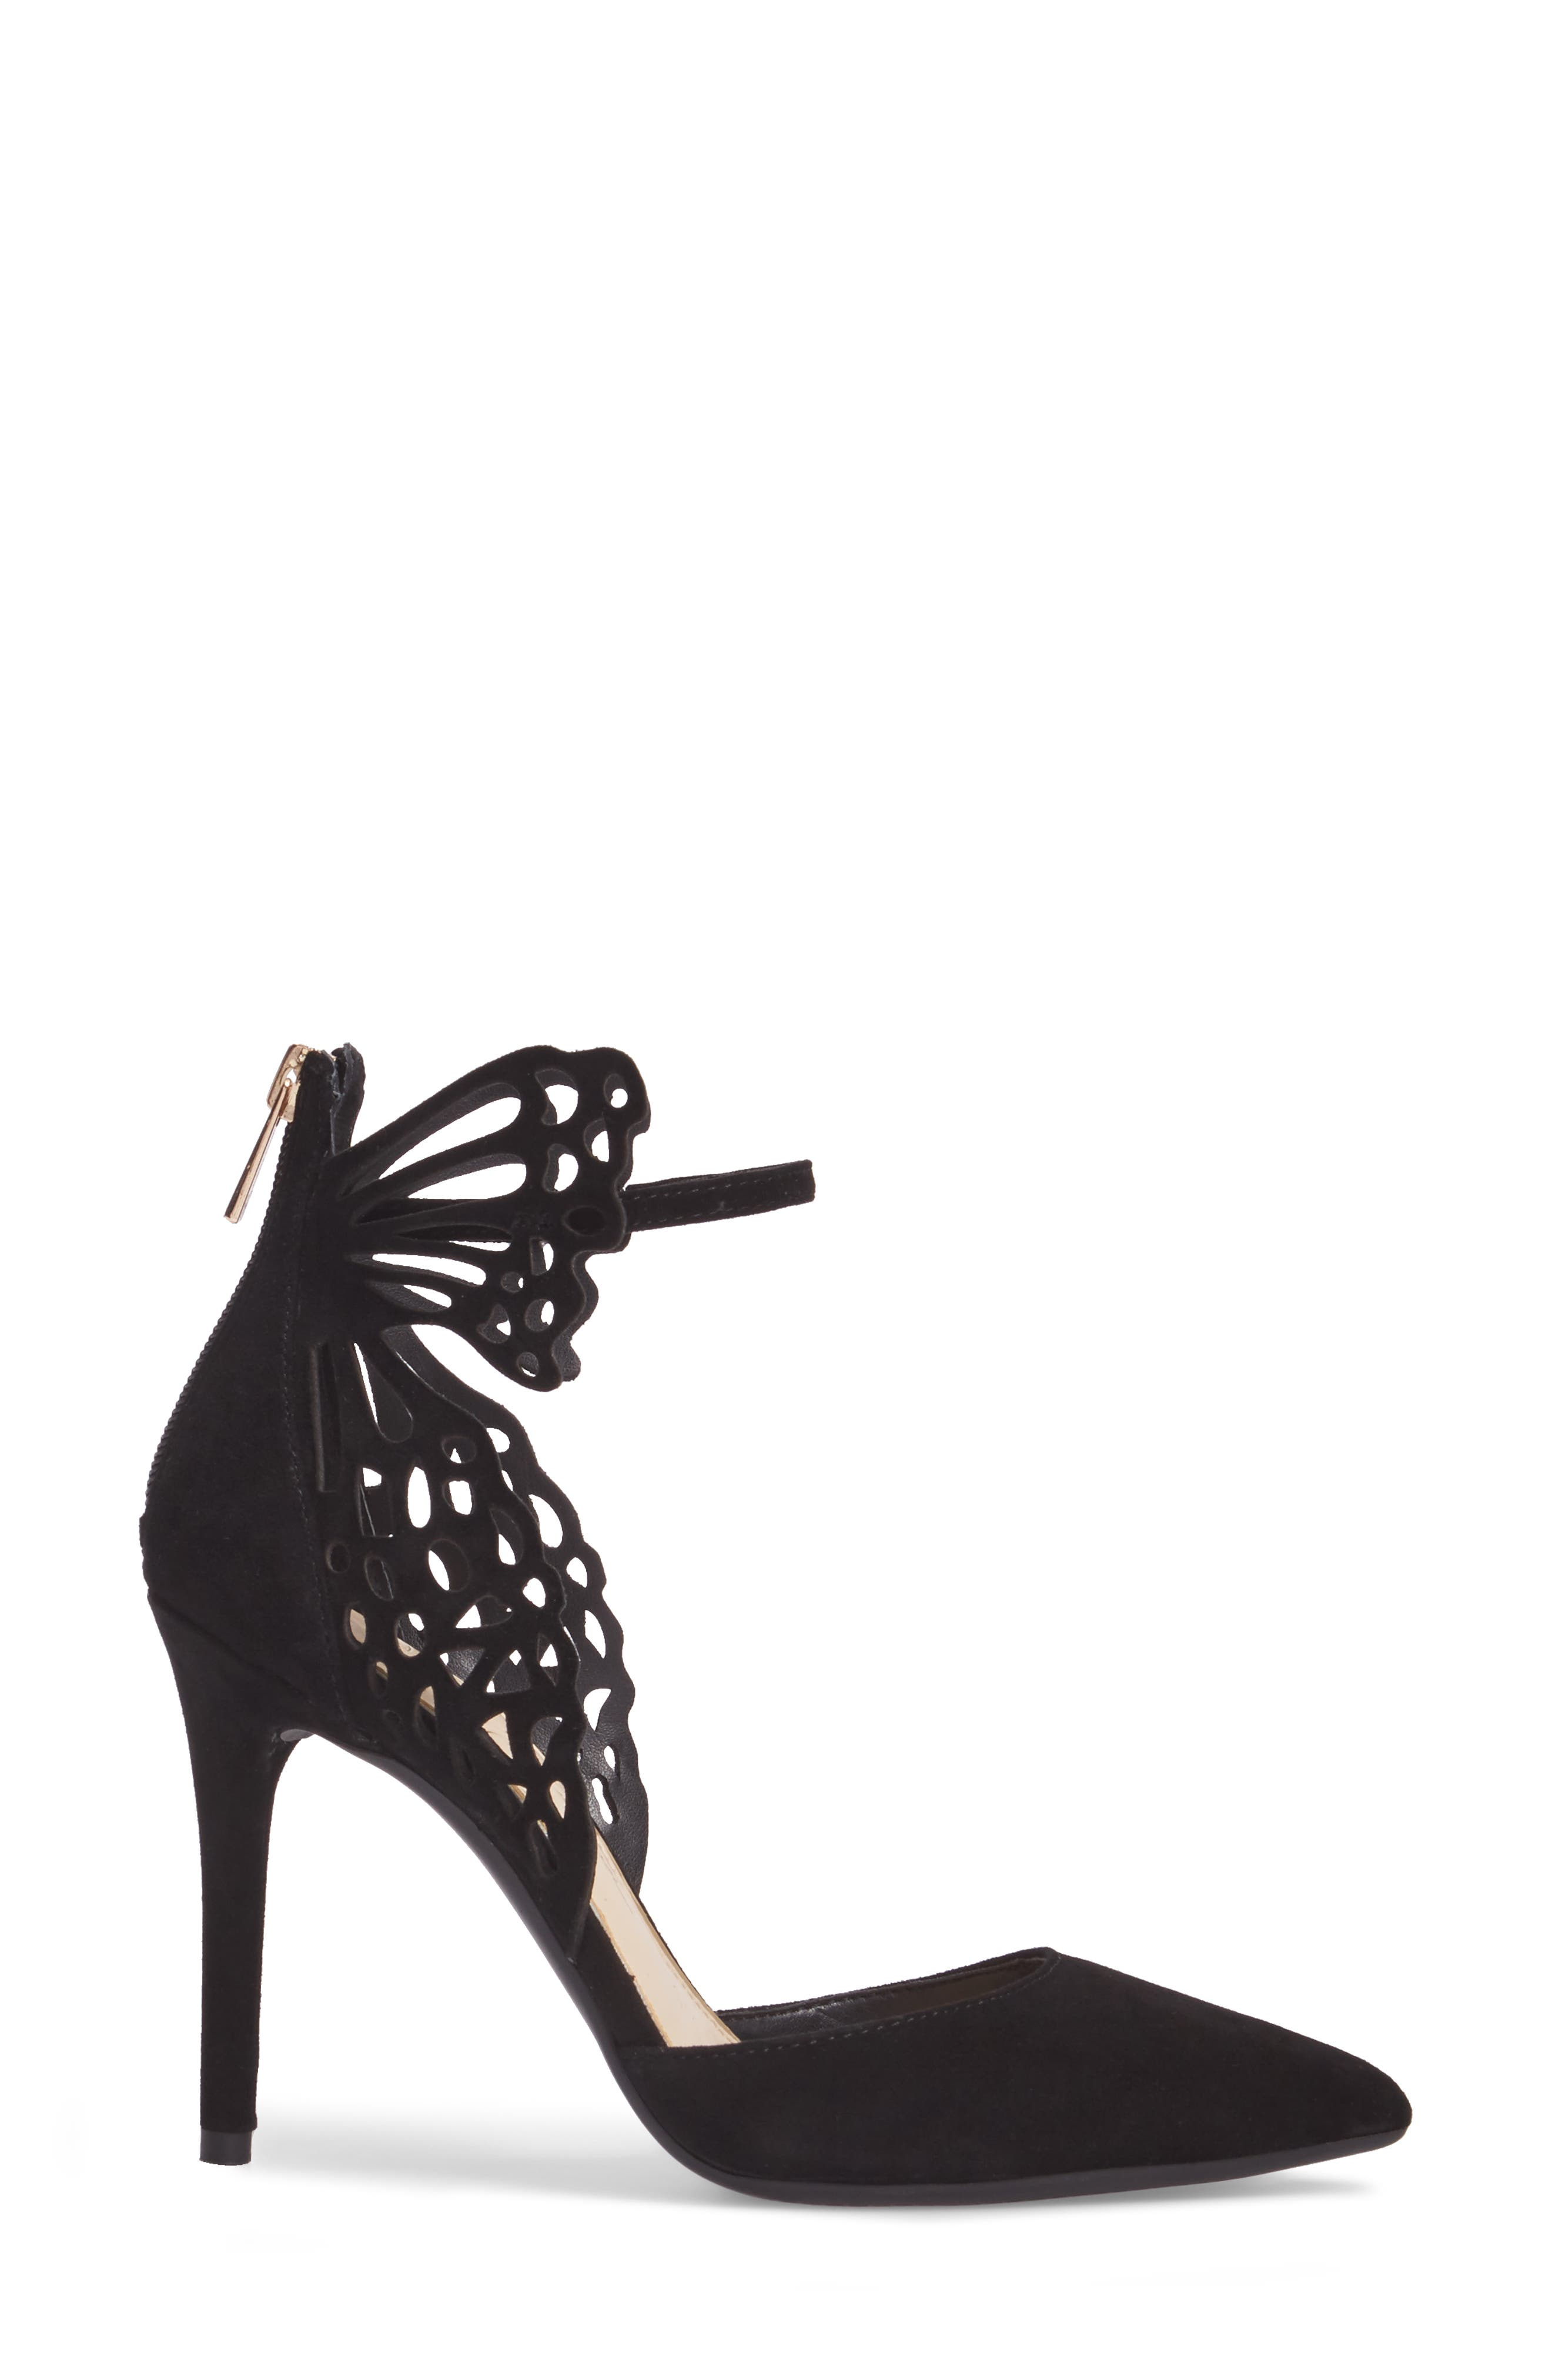 Leasia Butterfly Pump,                             Alternate thumbnail 3, color,                             001